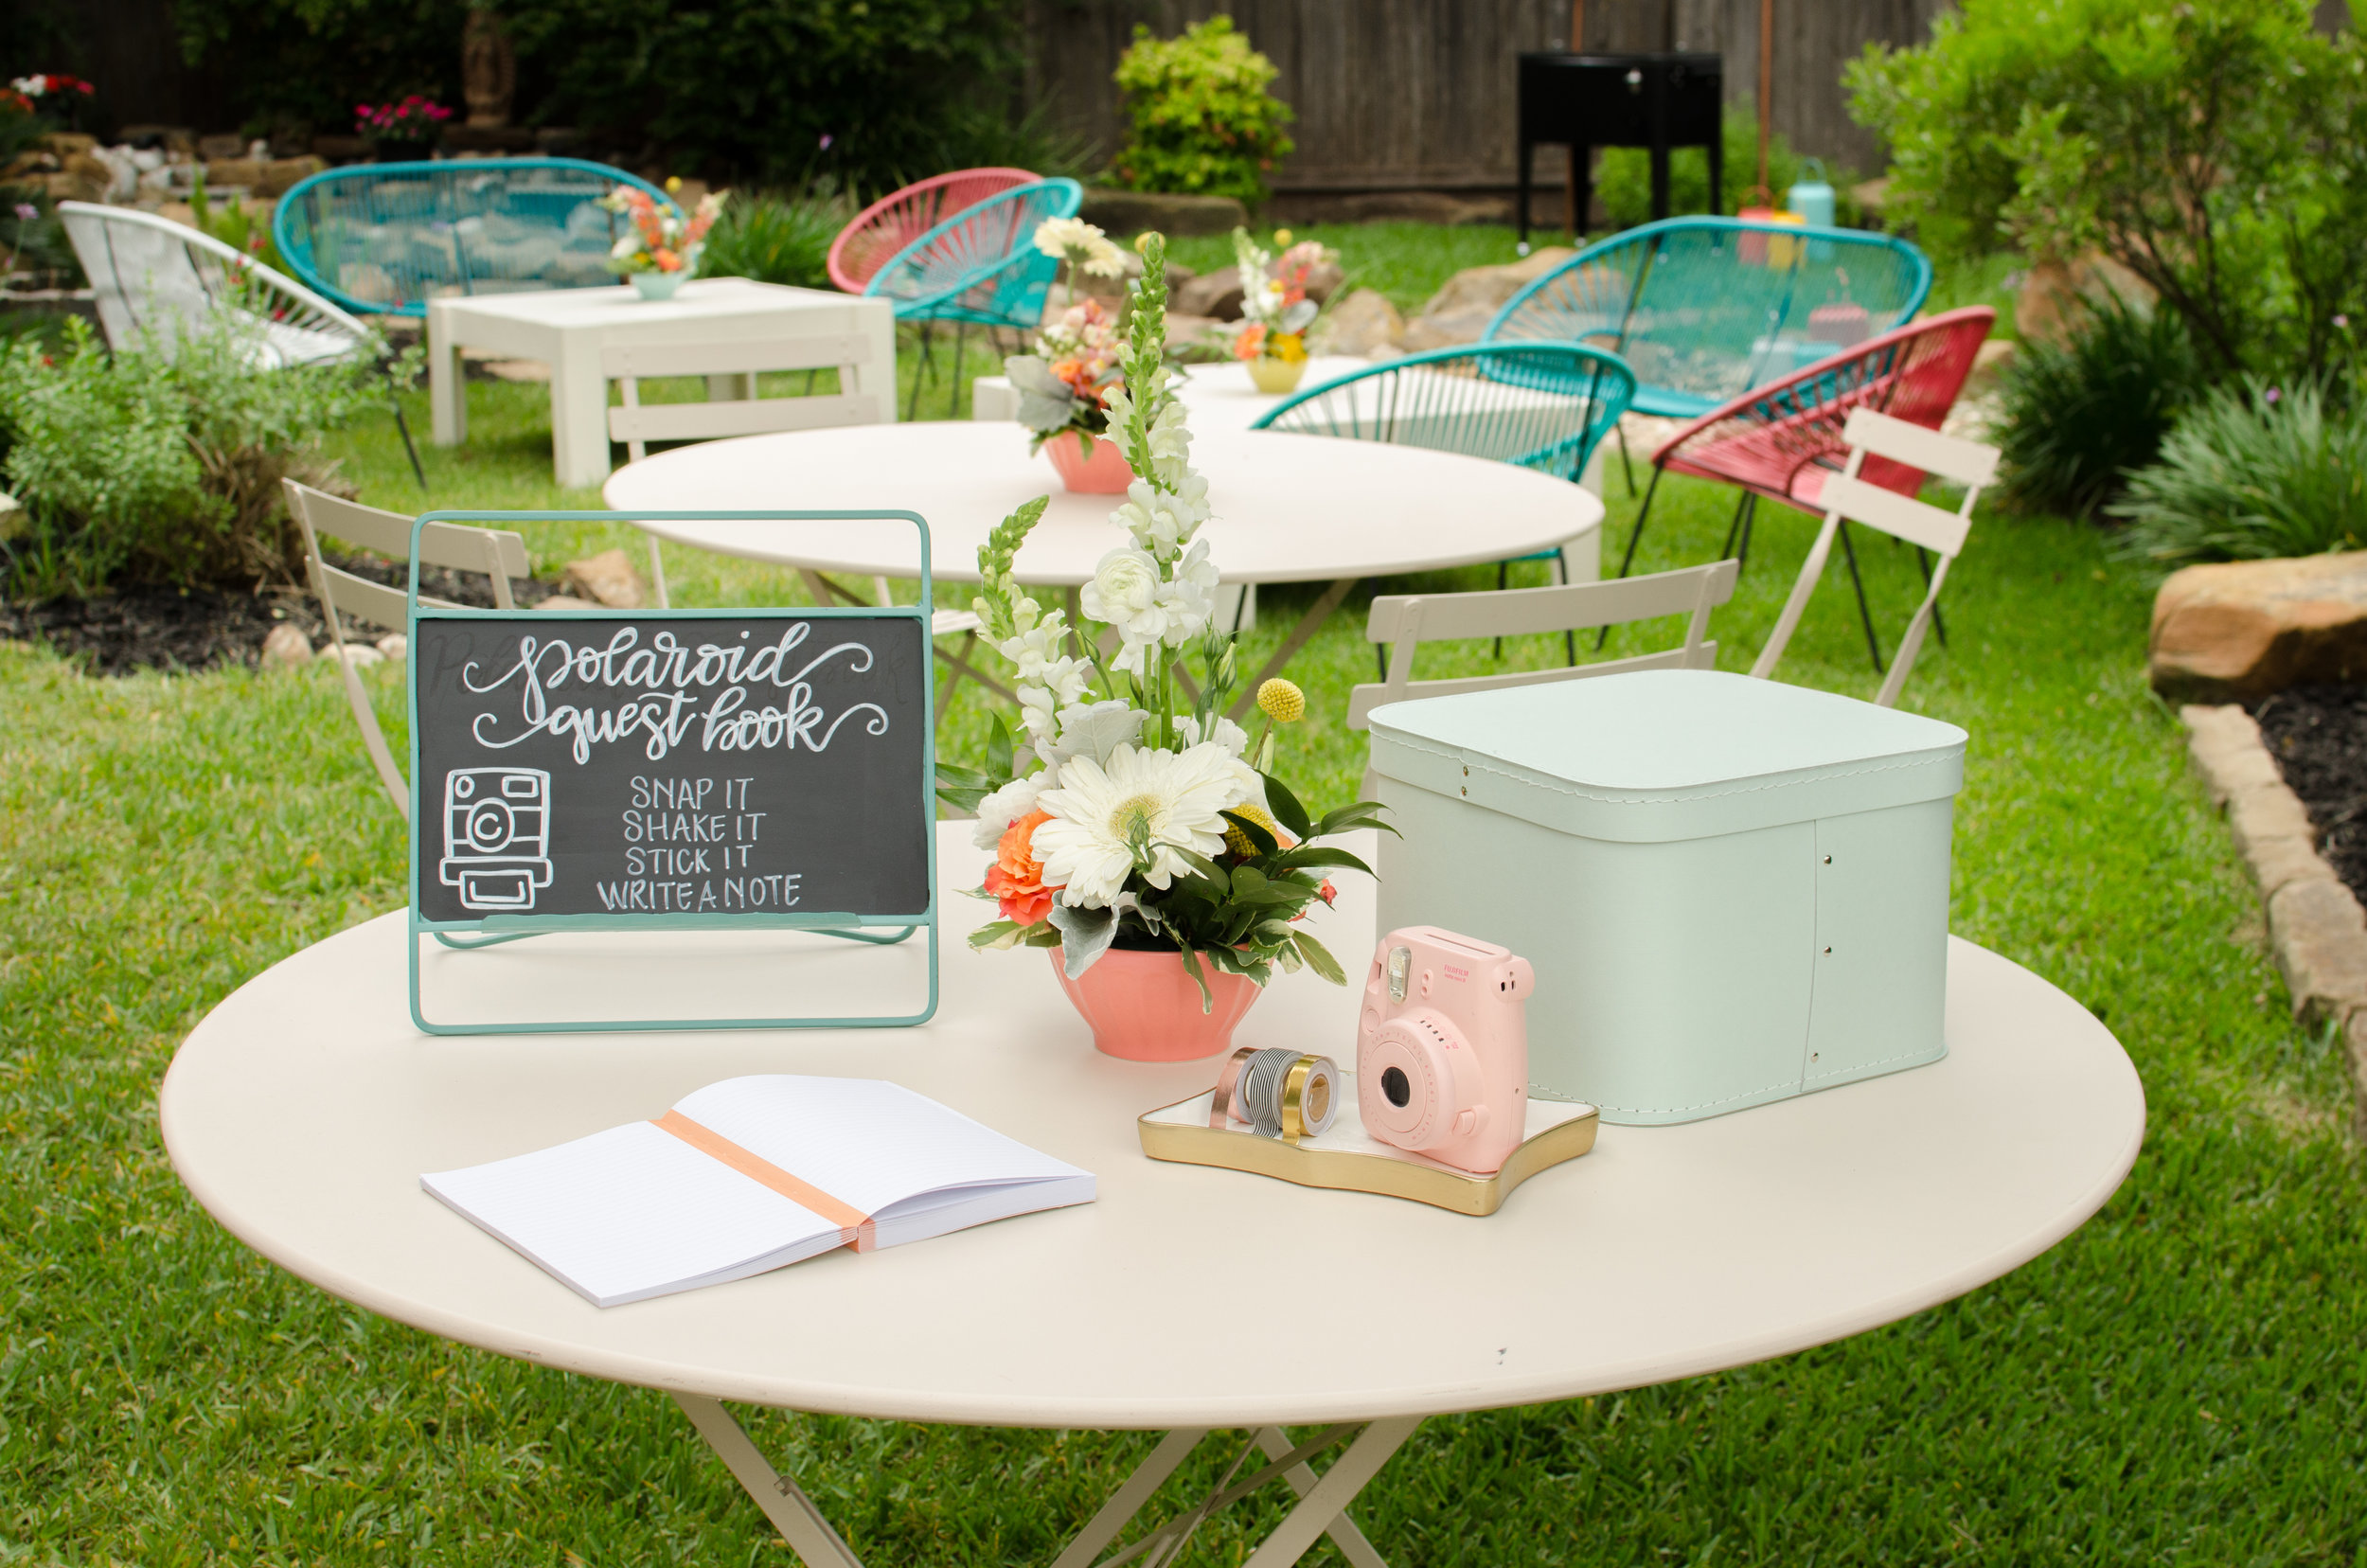 Be creative with a Polaroid guest book table, perfect for weddings or any party. Snap it, Share it, Stick it, Write a Note. See more from this Grad Party on Mint Event Design www.minteventdesign.com #graduationparty #graduationpartyideas #graduation #gradparty #gradpartyideas